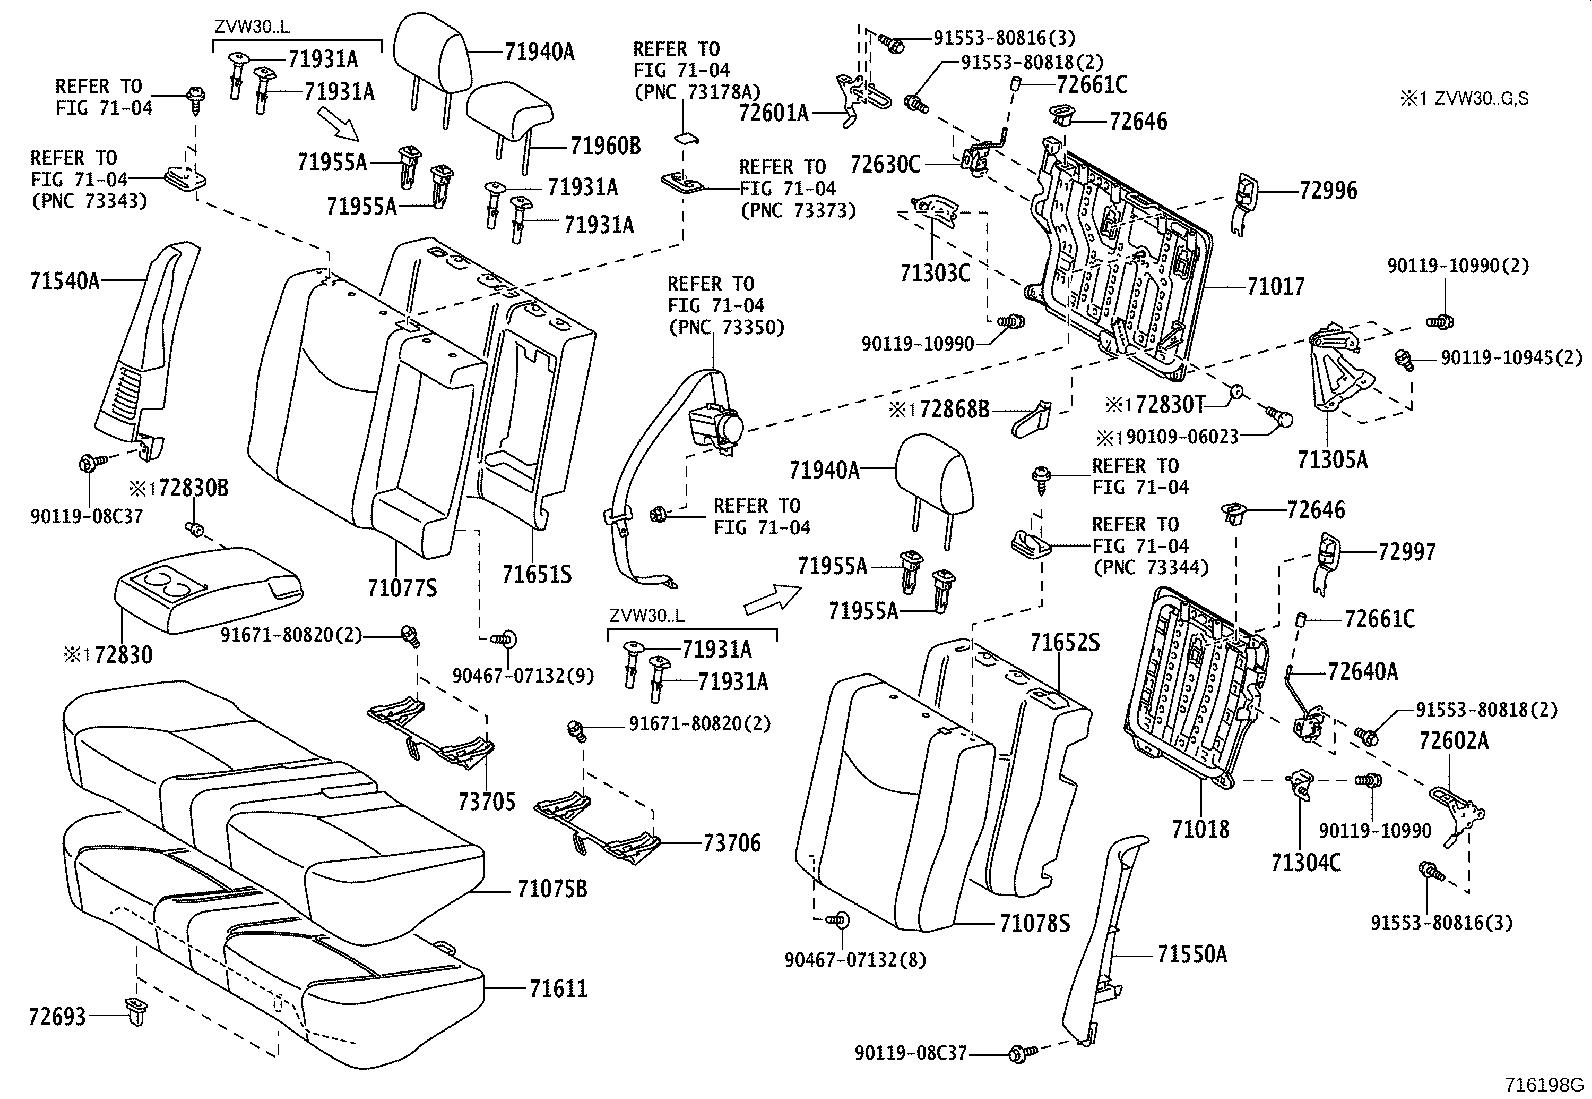 Diagram REAR SEAT & SEAT TRACK for your 2002 Toyota Prius